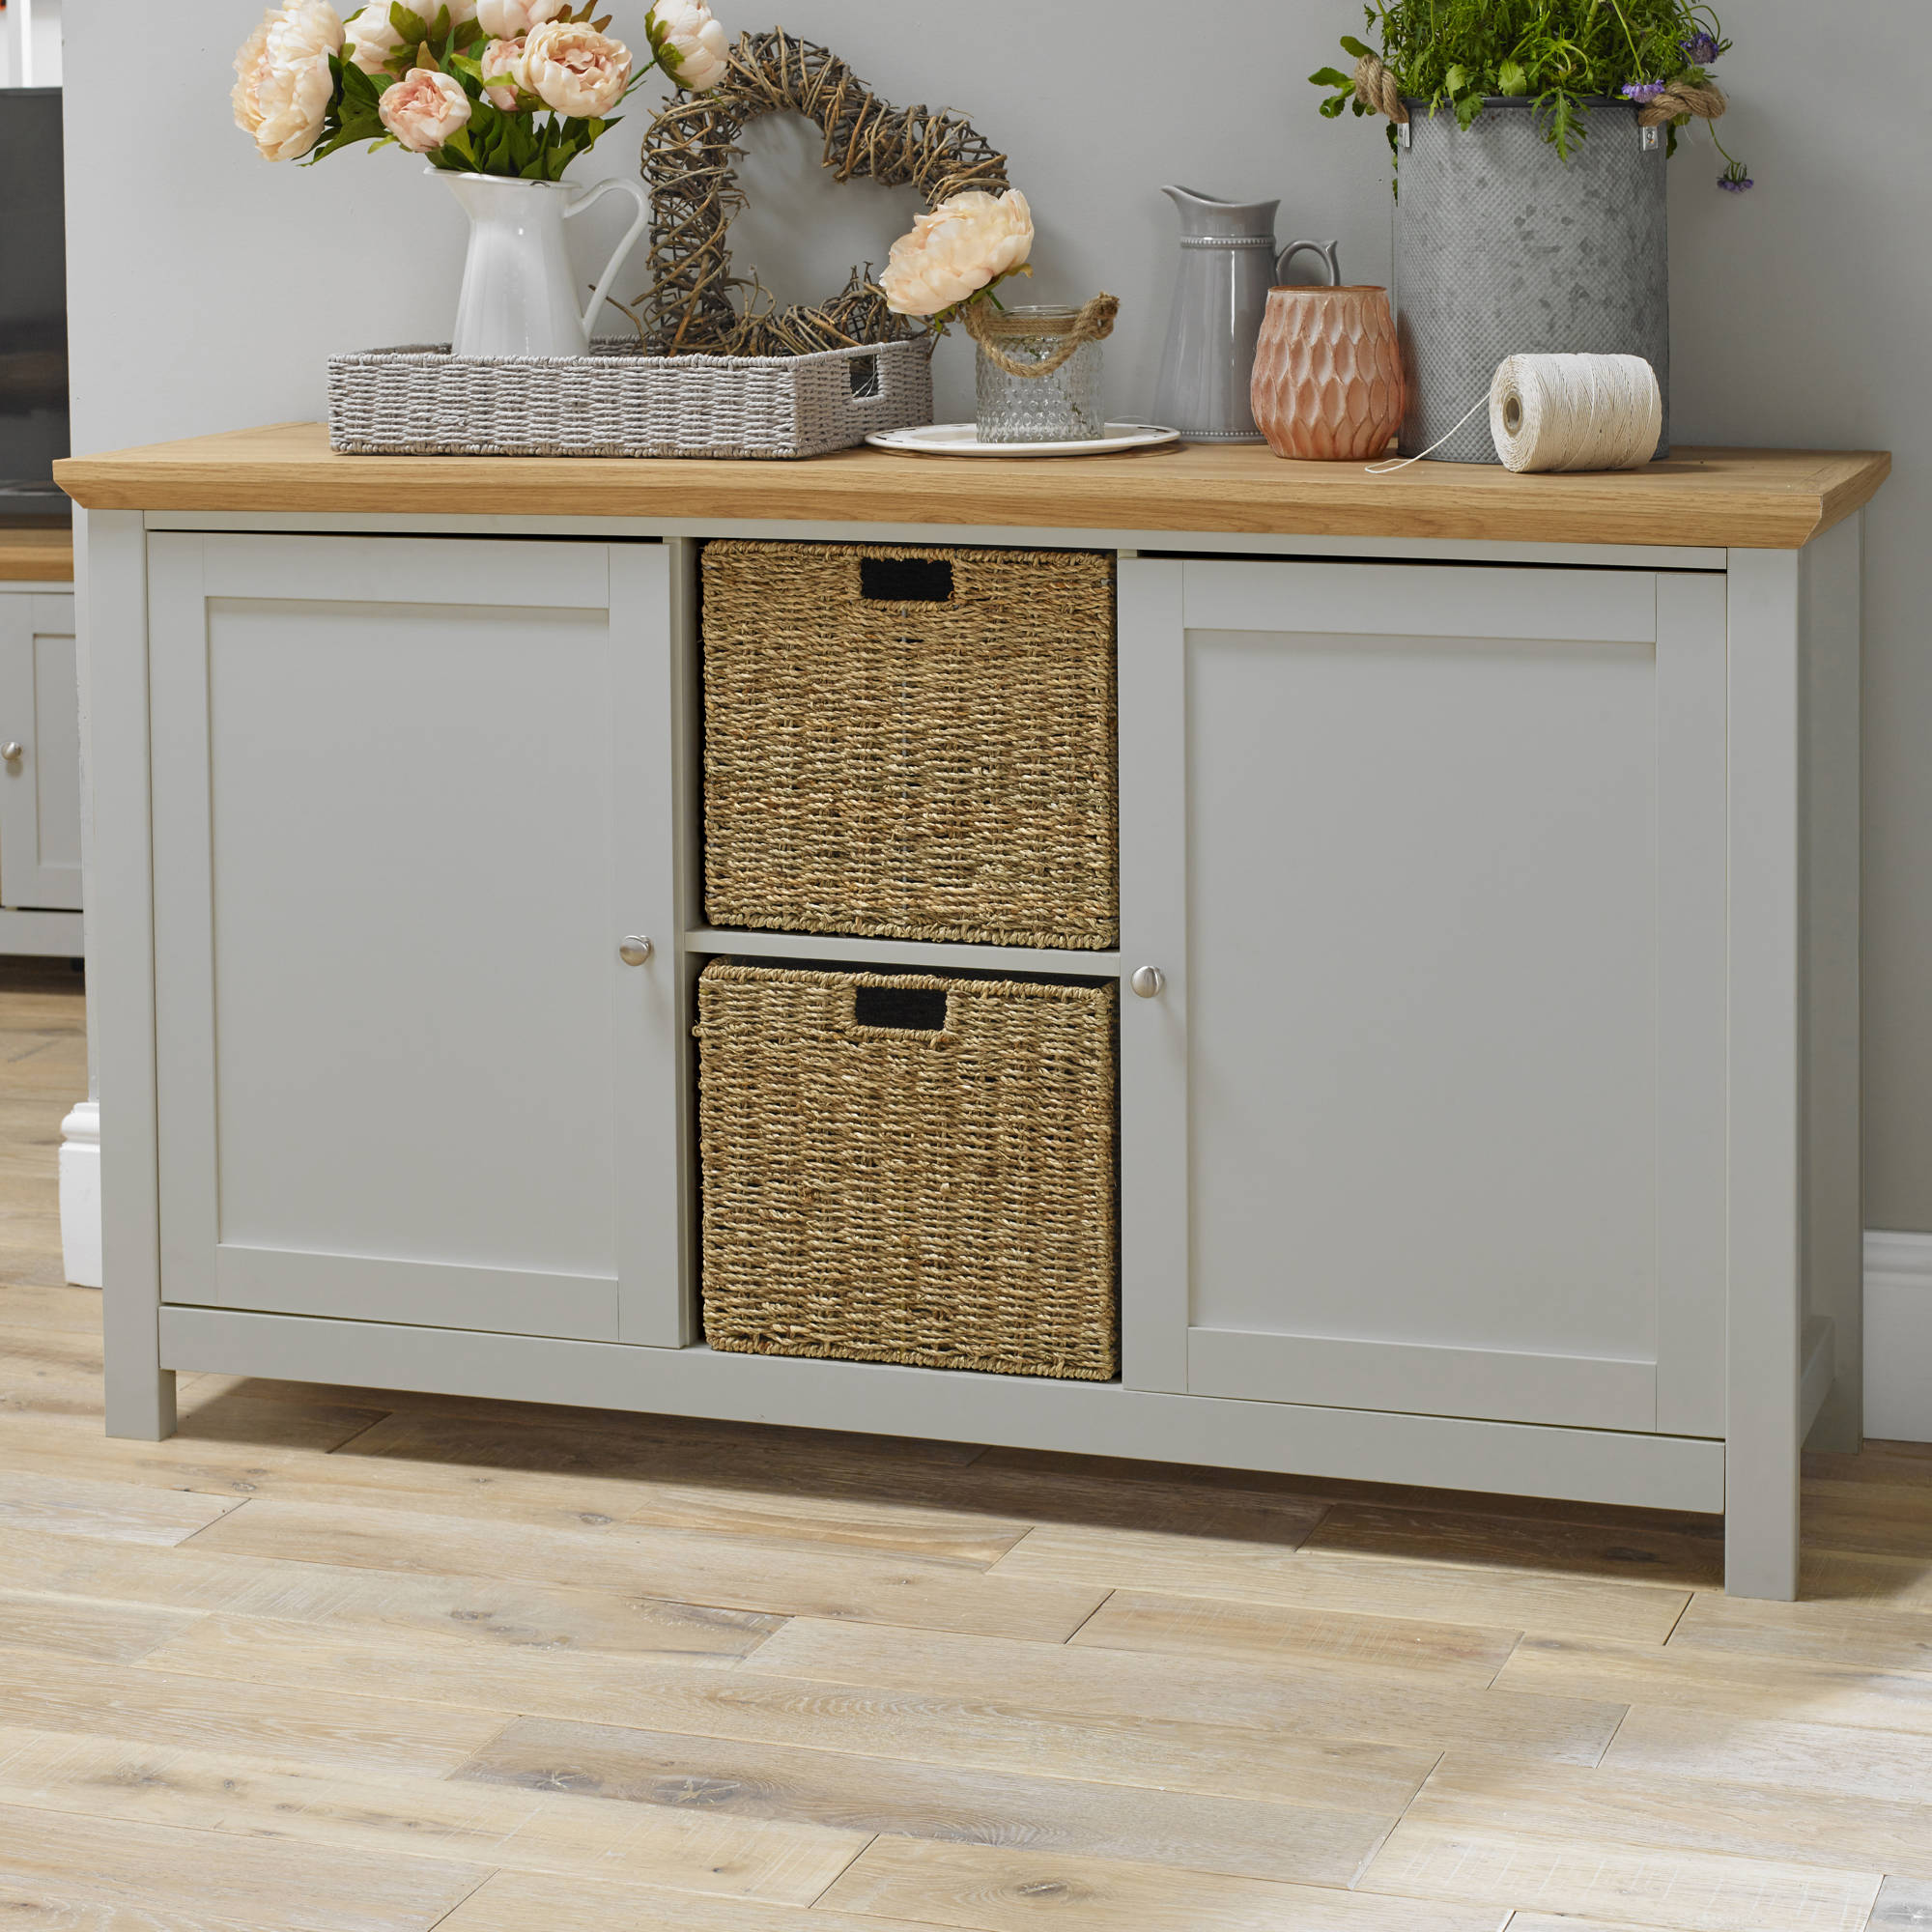 Broadwell Sideboard in Grey - Ezzo